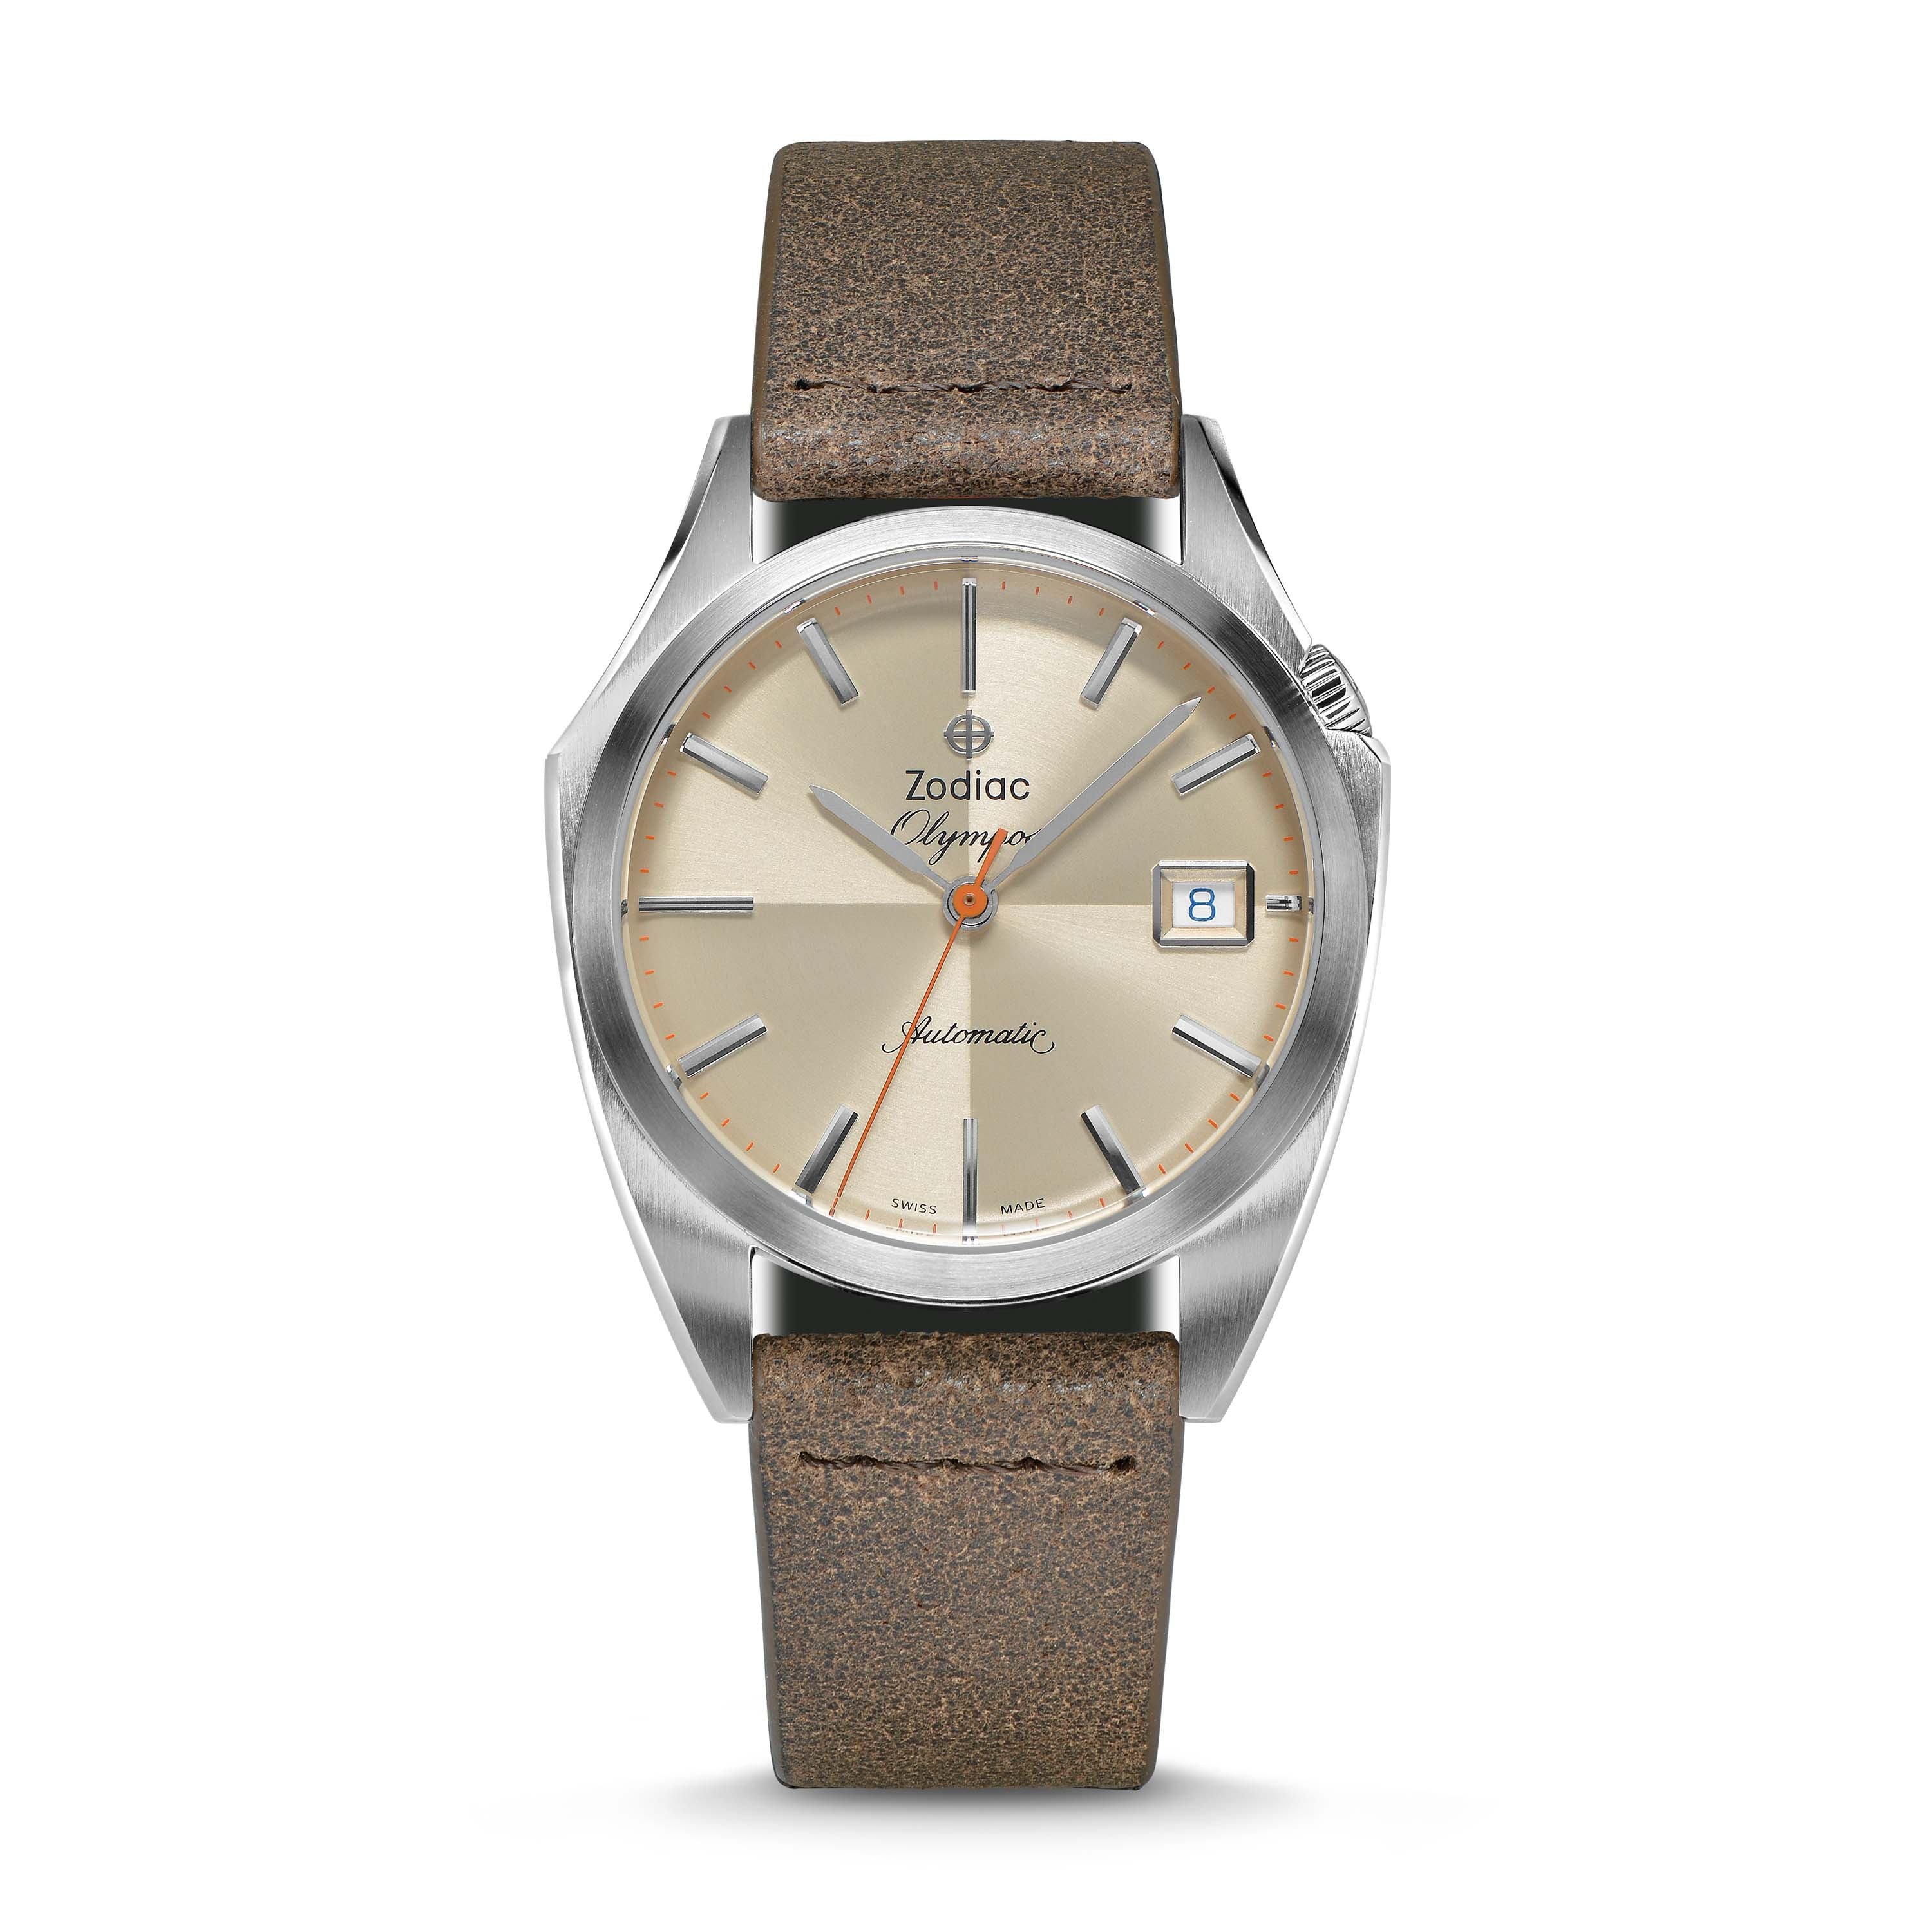 ZODIAC OLYMPOS AUTOMATIC THREE-HAND DATE BROWN LEATHER WATCH